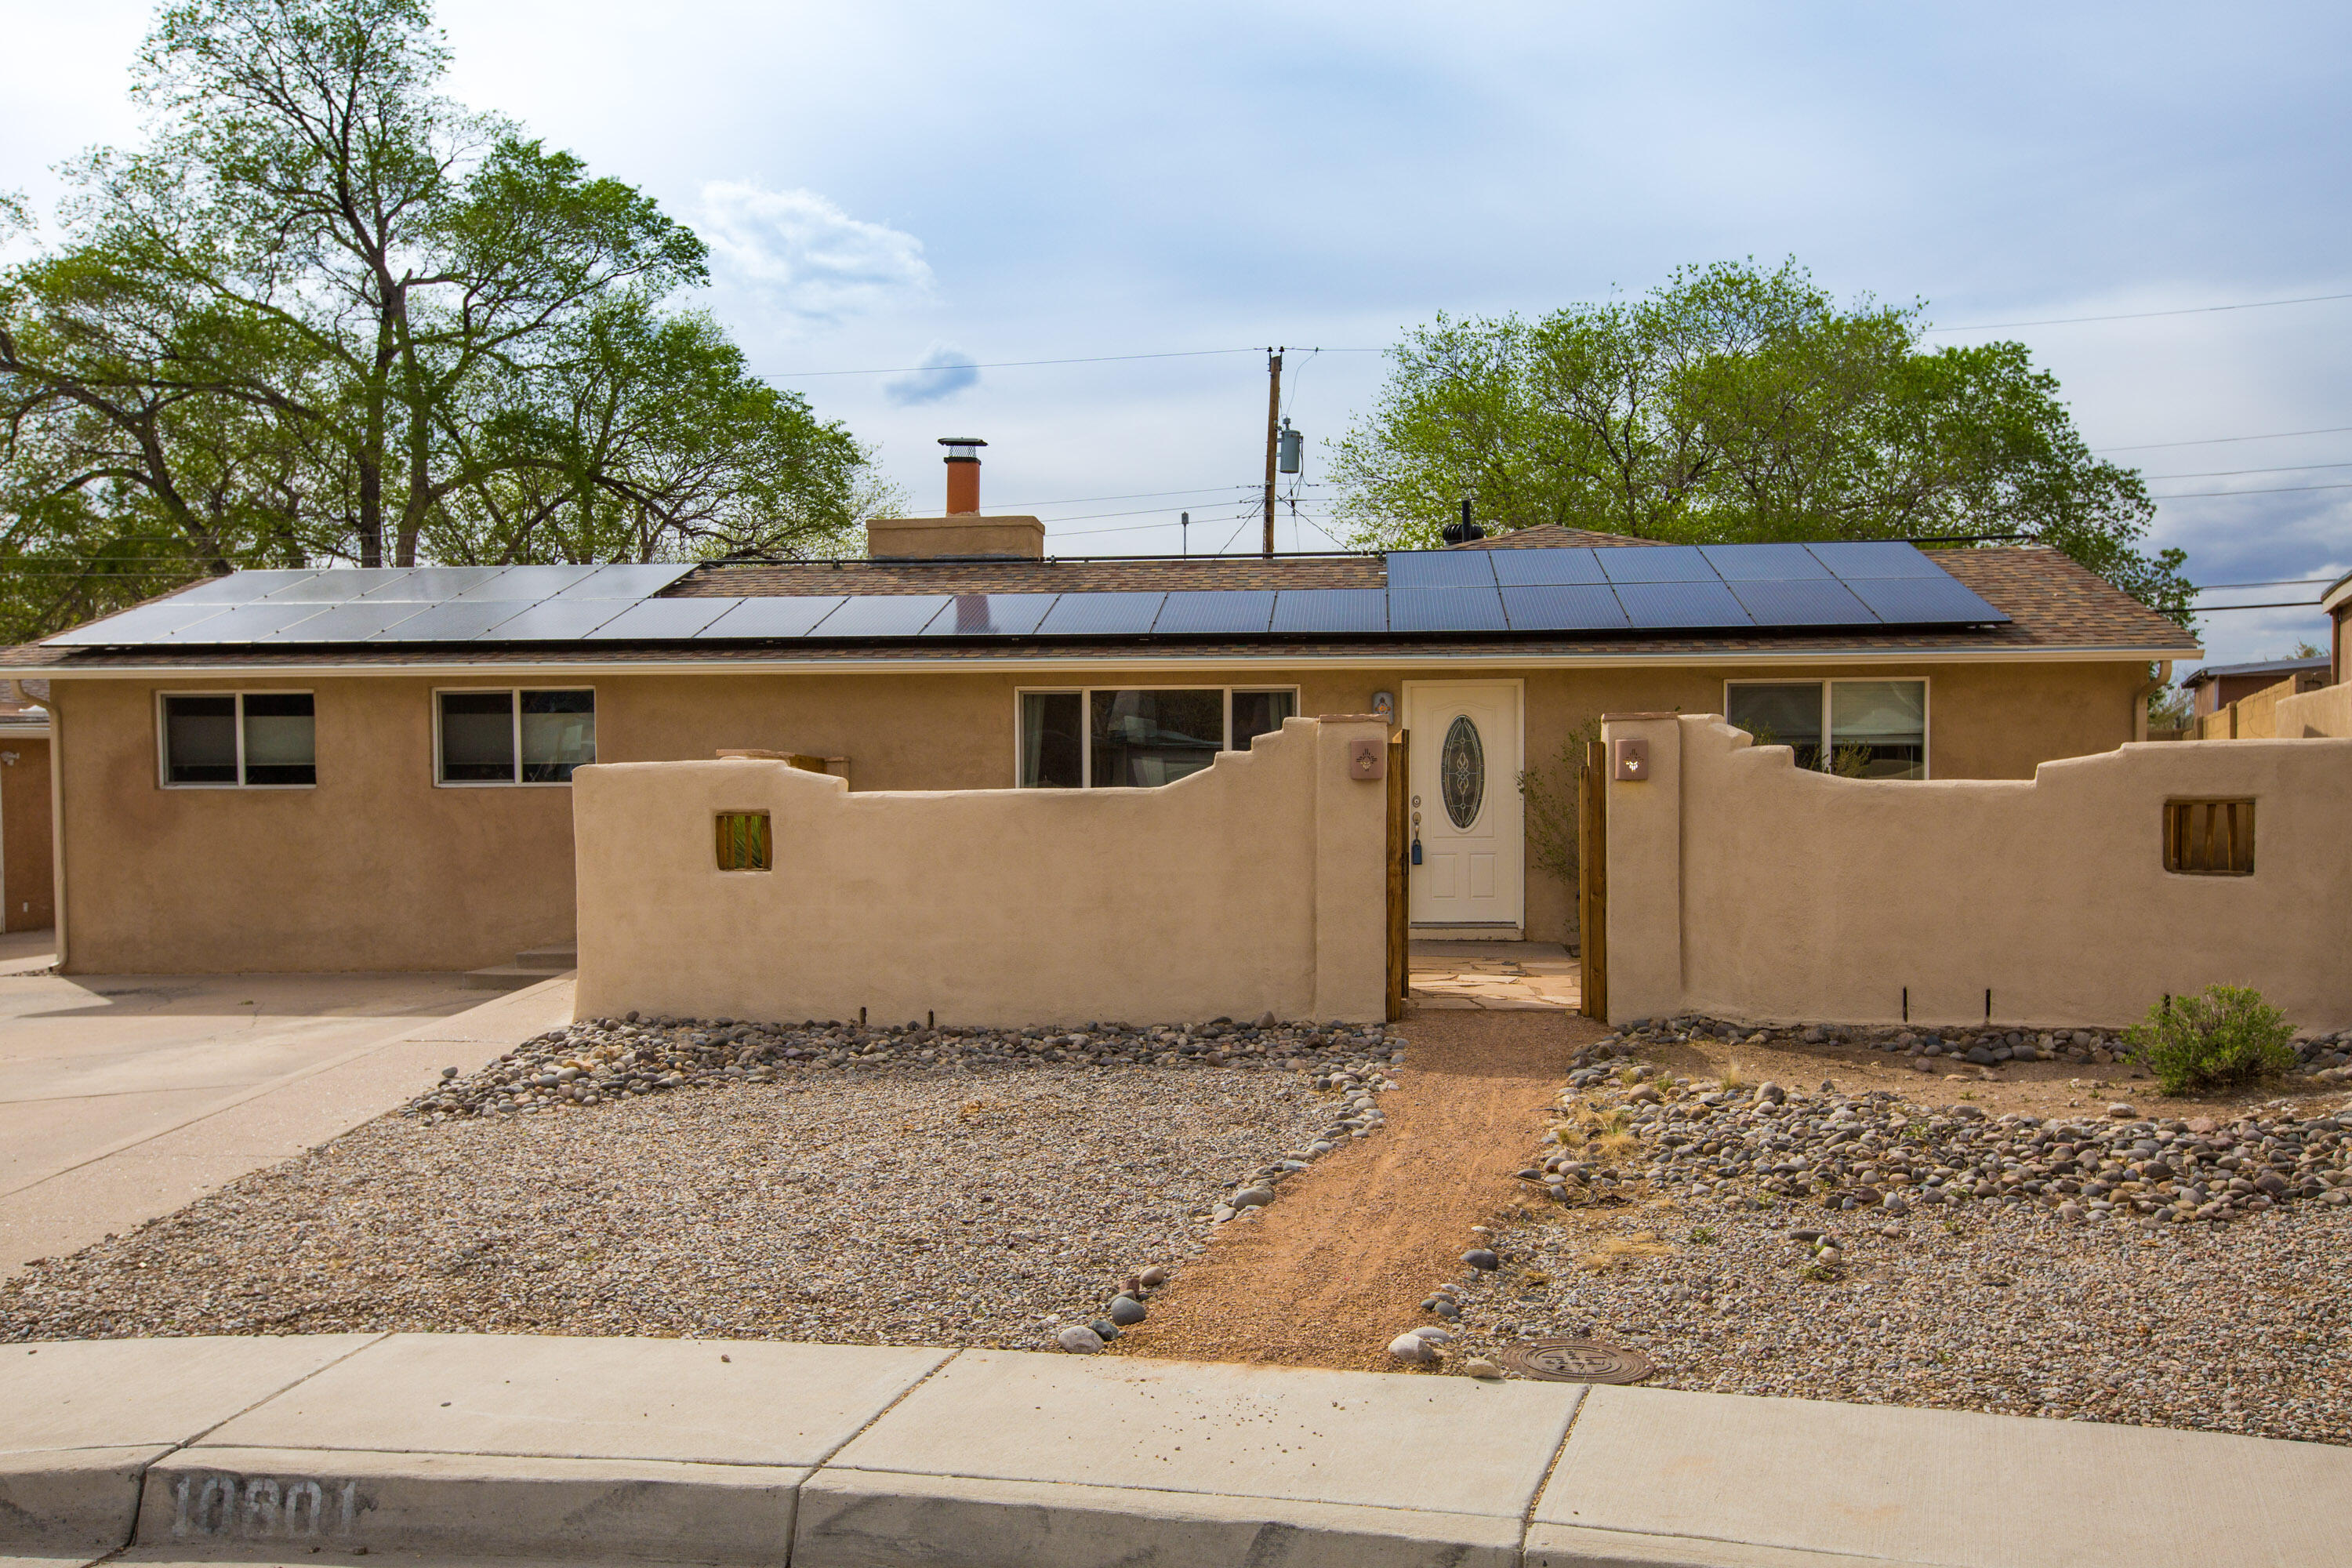 Fully owned solar makes living in this spacious versatile home affordable and easy. Lots of updates and features include welcoming front courtyard, view of the mountains, lots of natural light in the living areas and privacy and quiet in the four bedrooms. Updated kitchen, well-equipped walk-in closet in the huge owner's suite goes well with the large bathroom featuring garden tub and shower. Outside features lush grass and plantings, a covered pergola for shade and privacy and more.